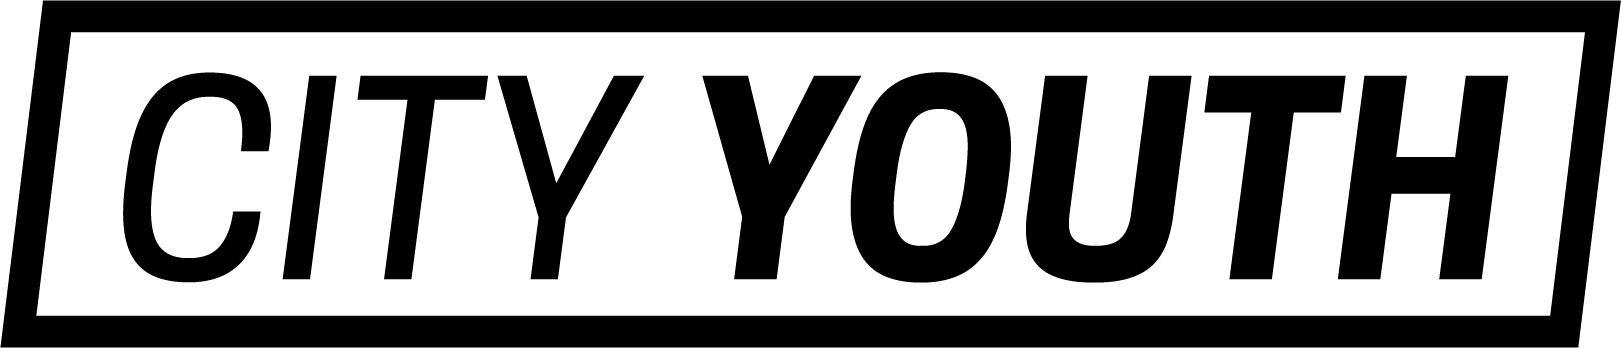 youth_BLACK_logo.png